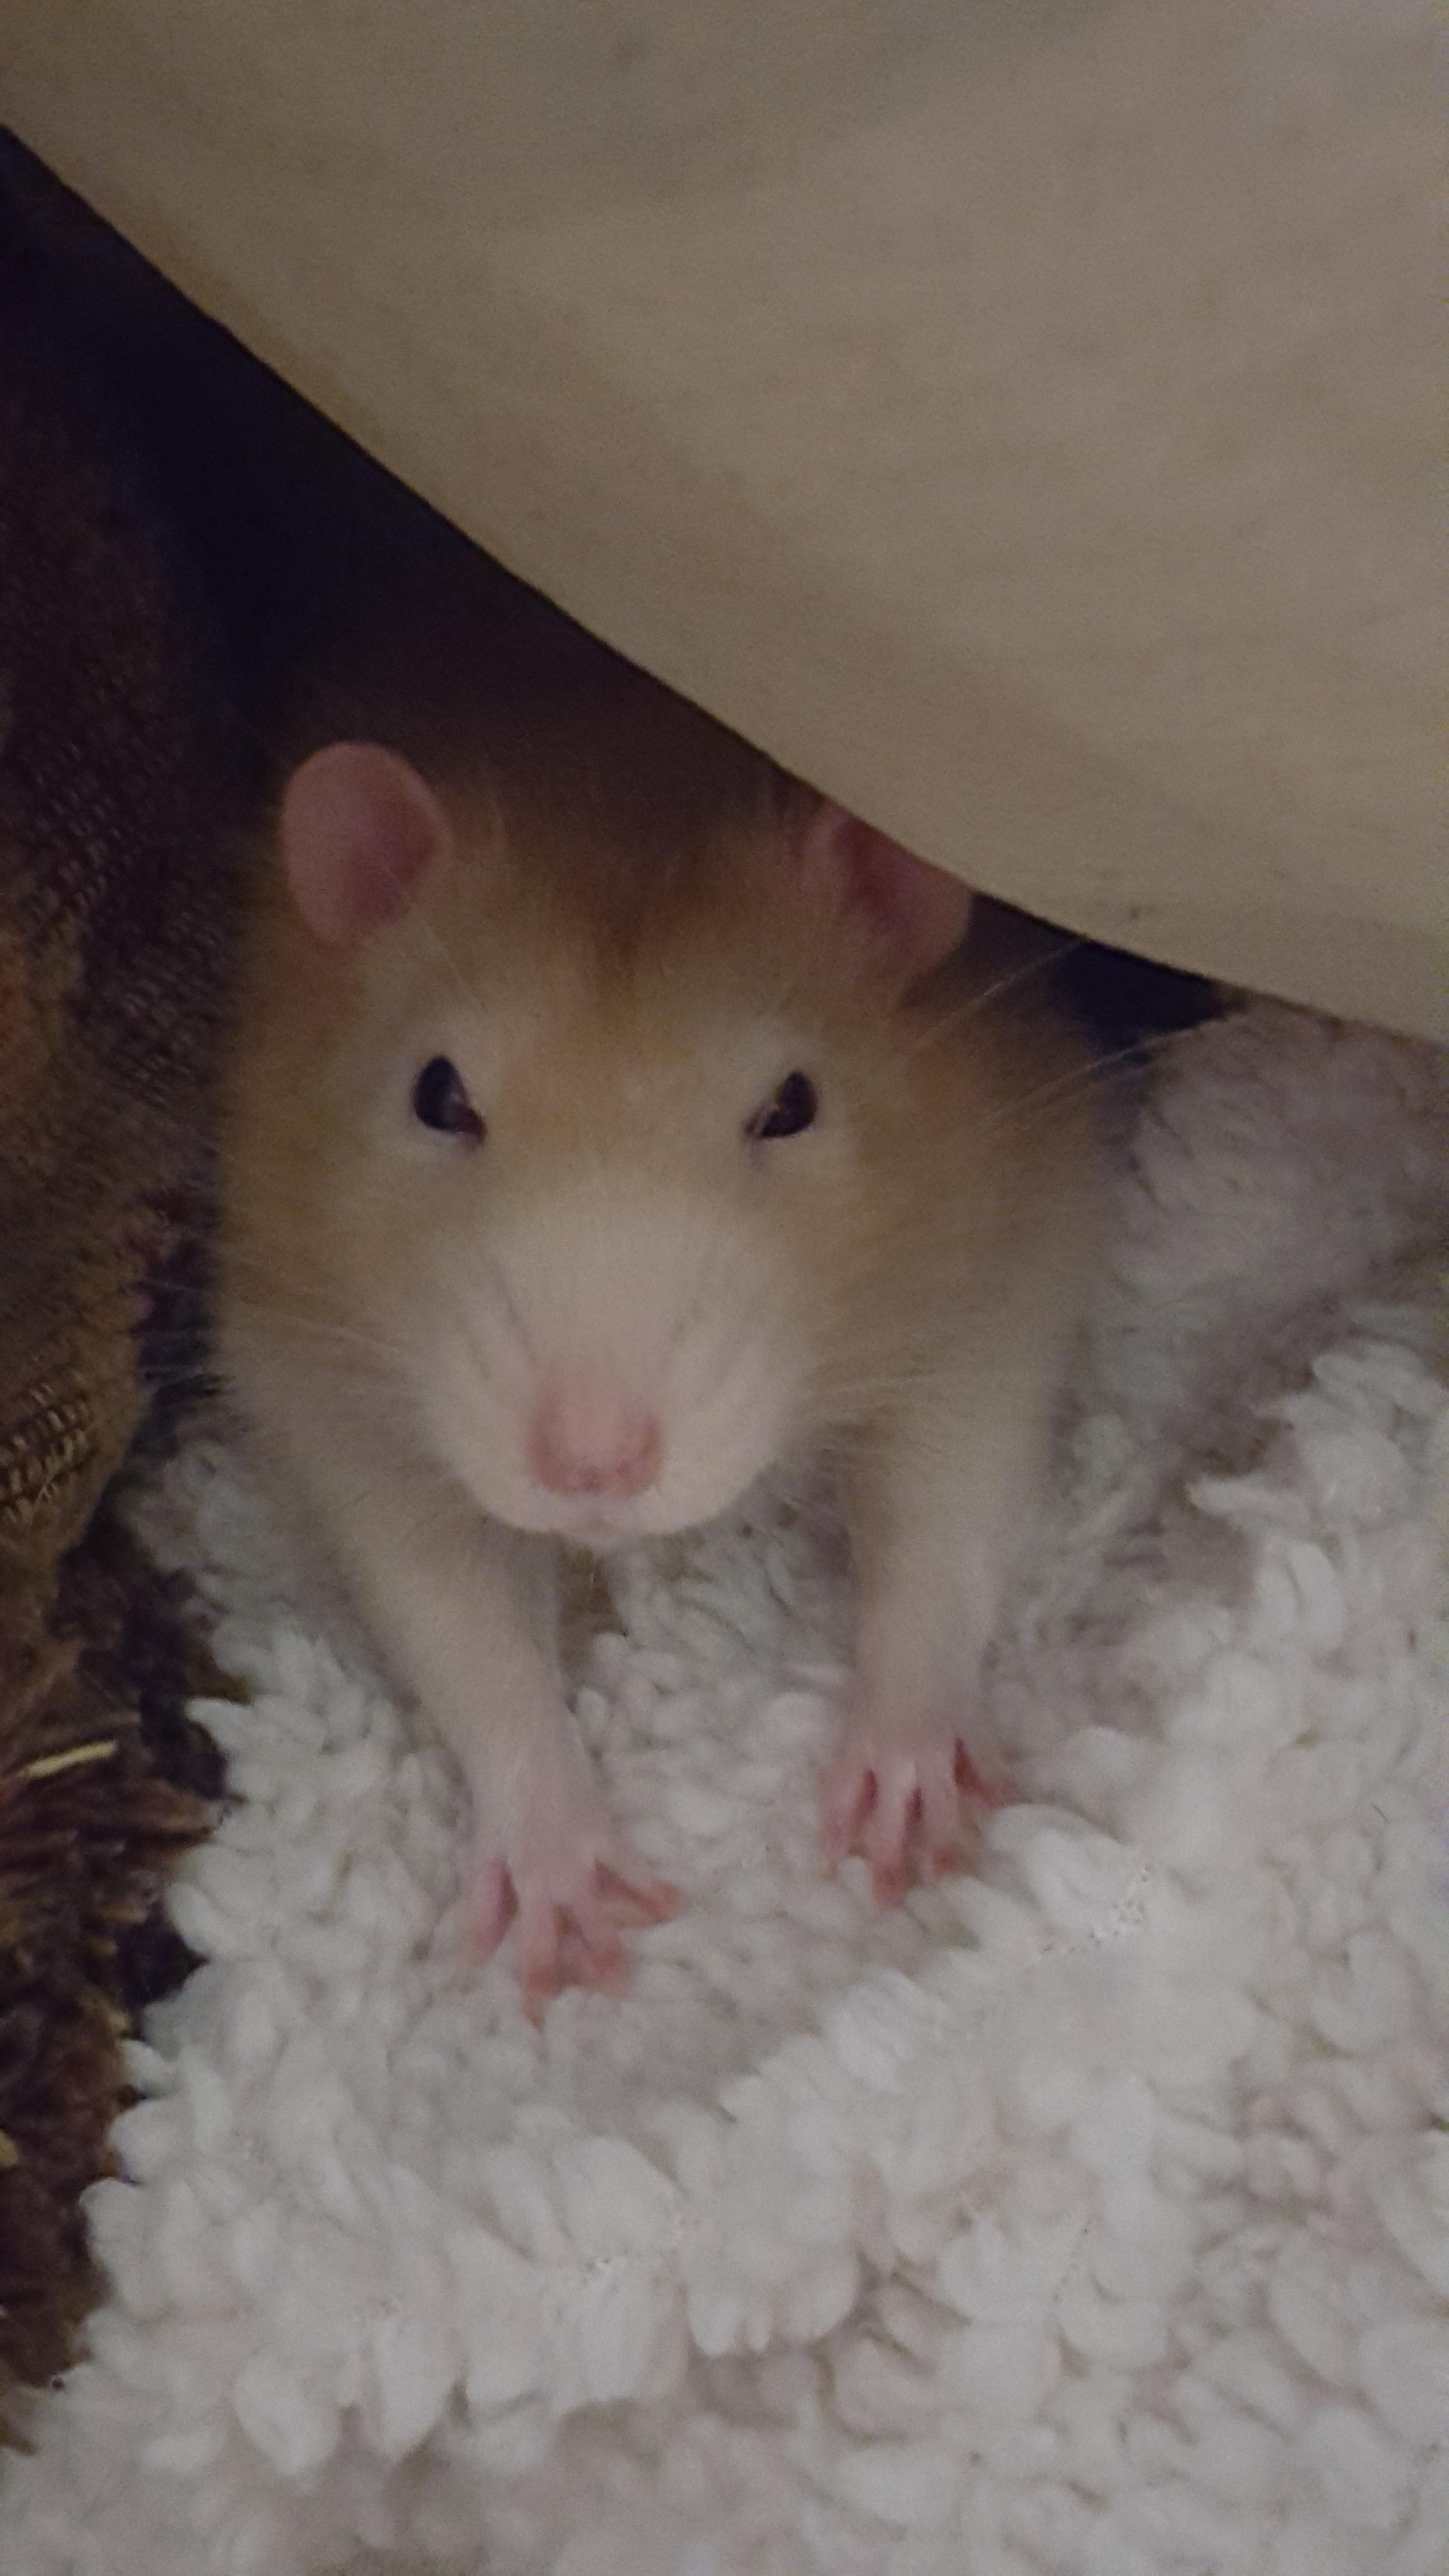 Cinni Looks So Pampered And Spoiled When He Lays With His Arms Out Like This Aww Cute Rat Cuterats Animals For Kids Best Pets For Kids Low Maintenance Pets